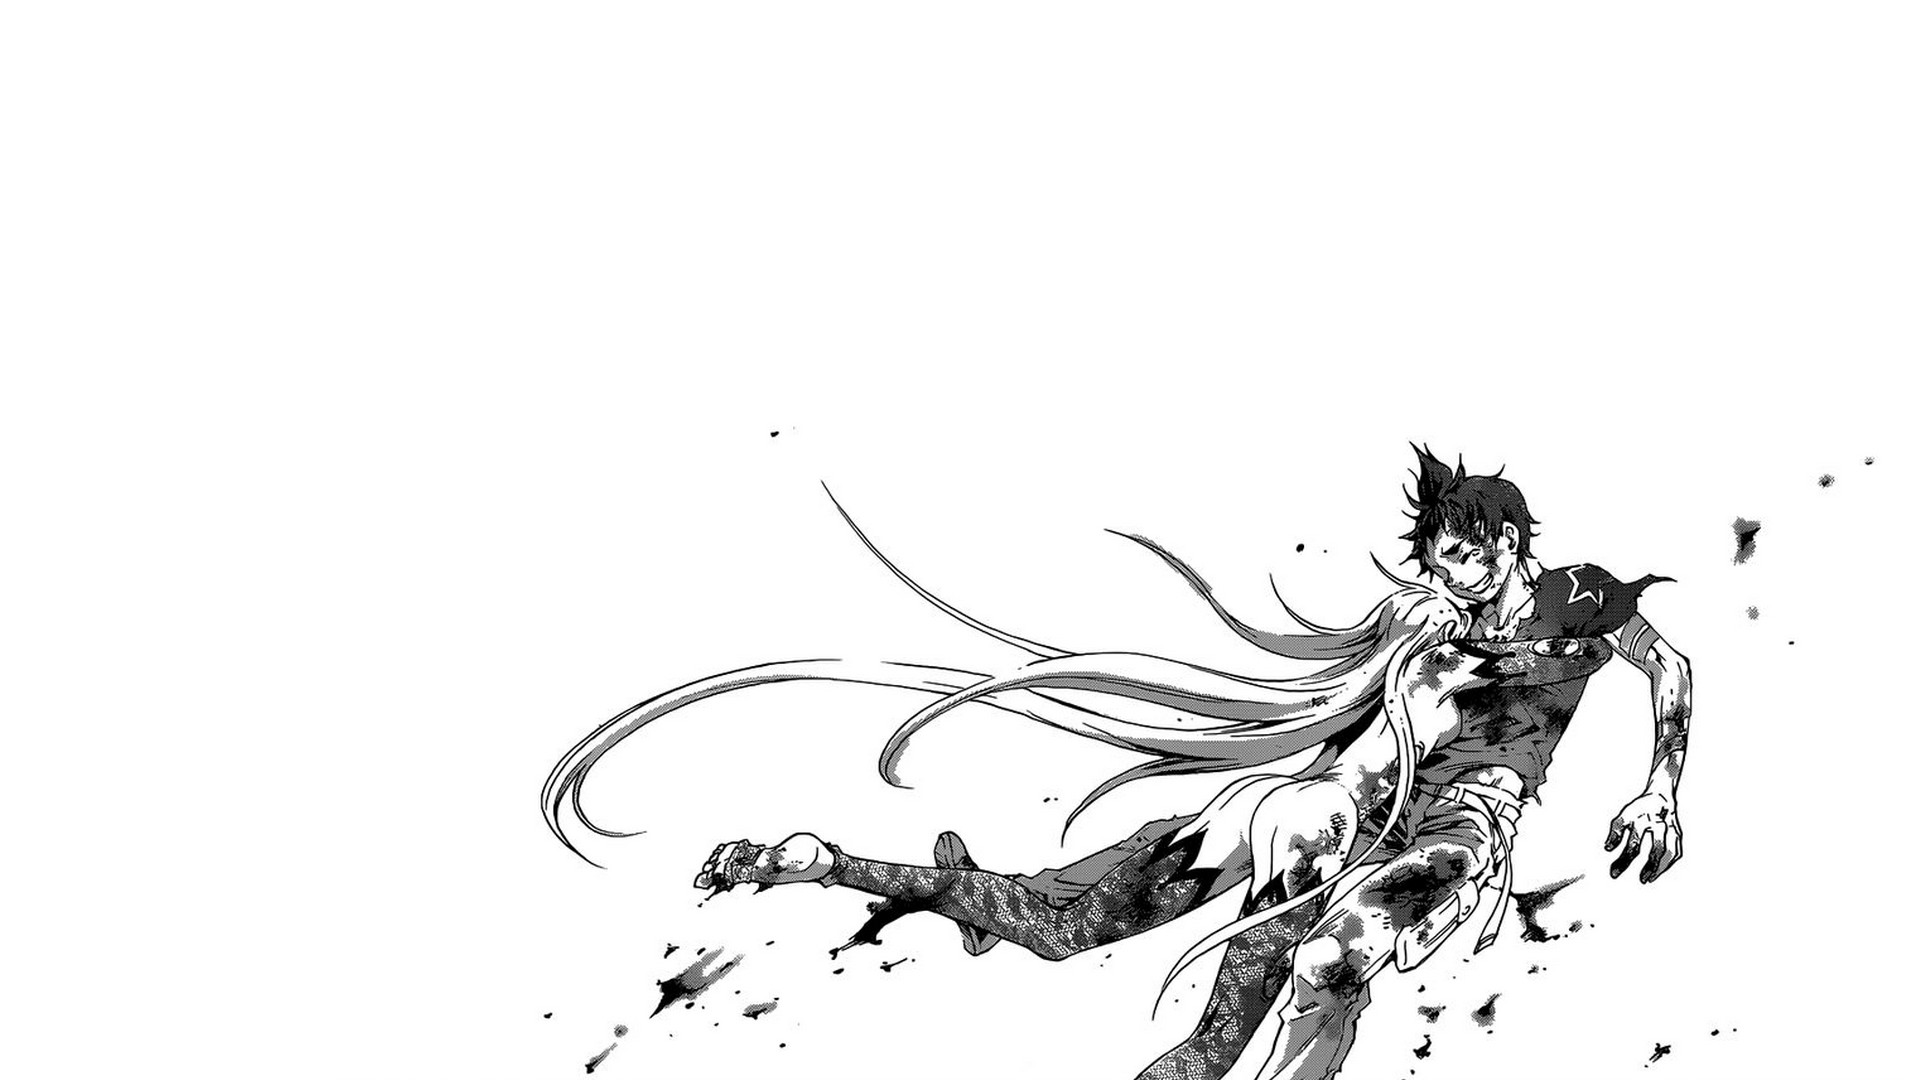 1920x1080 #manga, #Deadman Wonderland, #monochrome, wallpaper